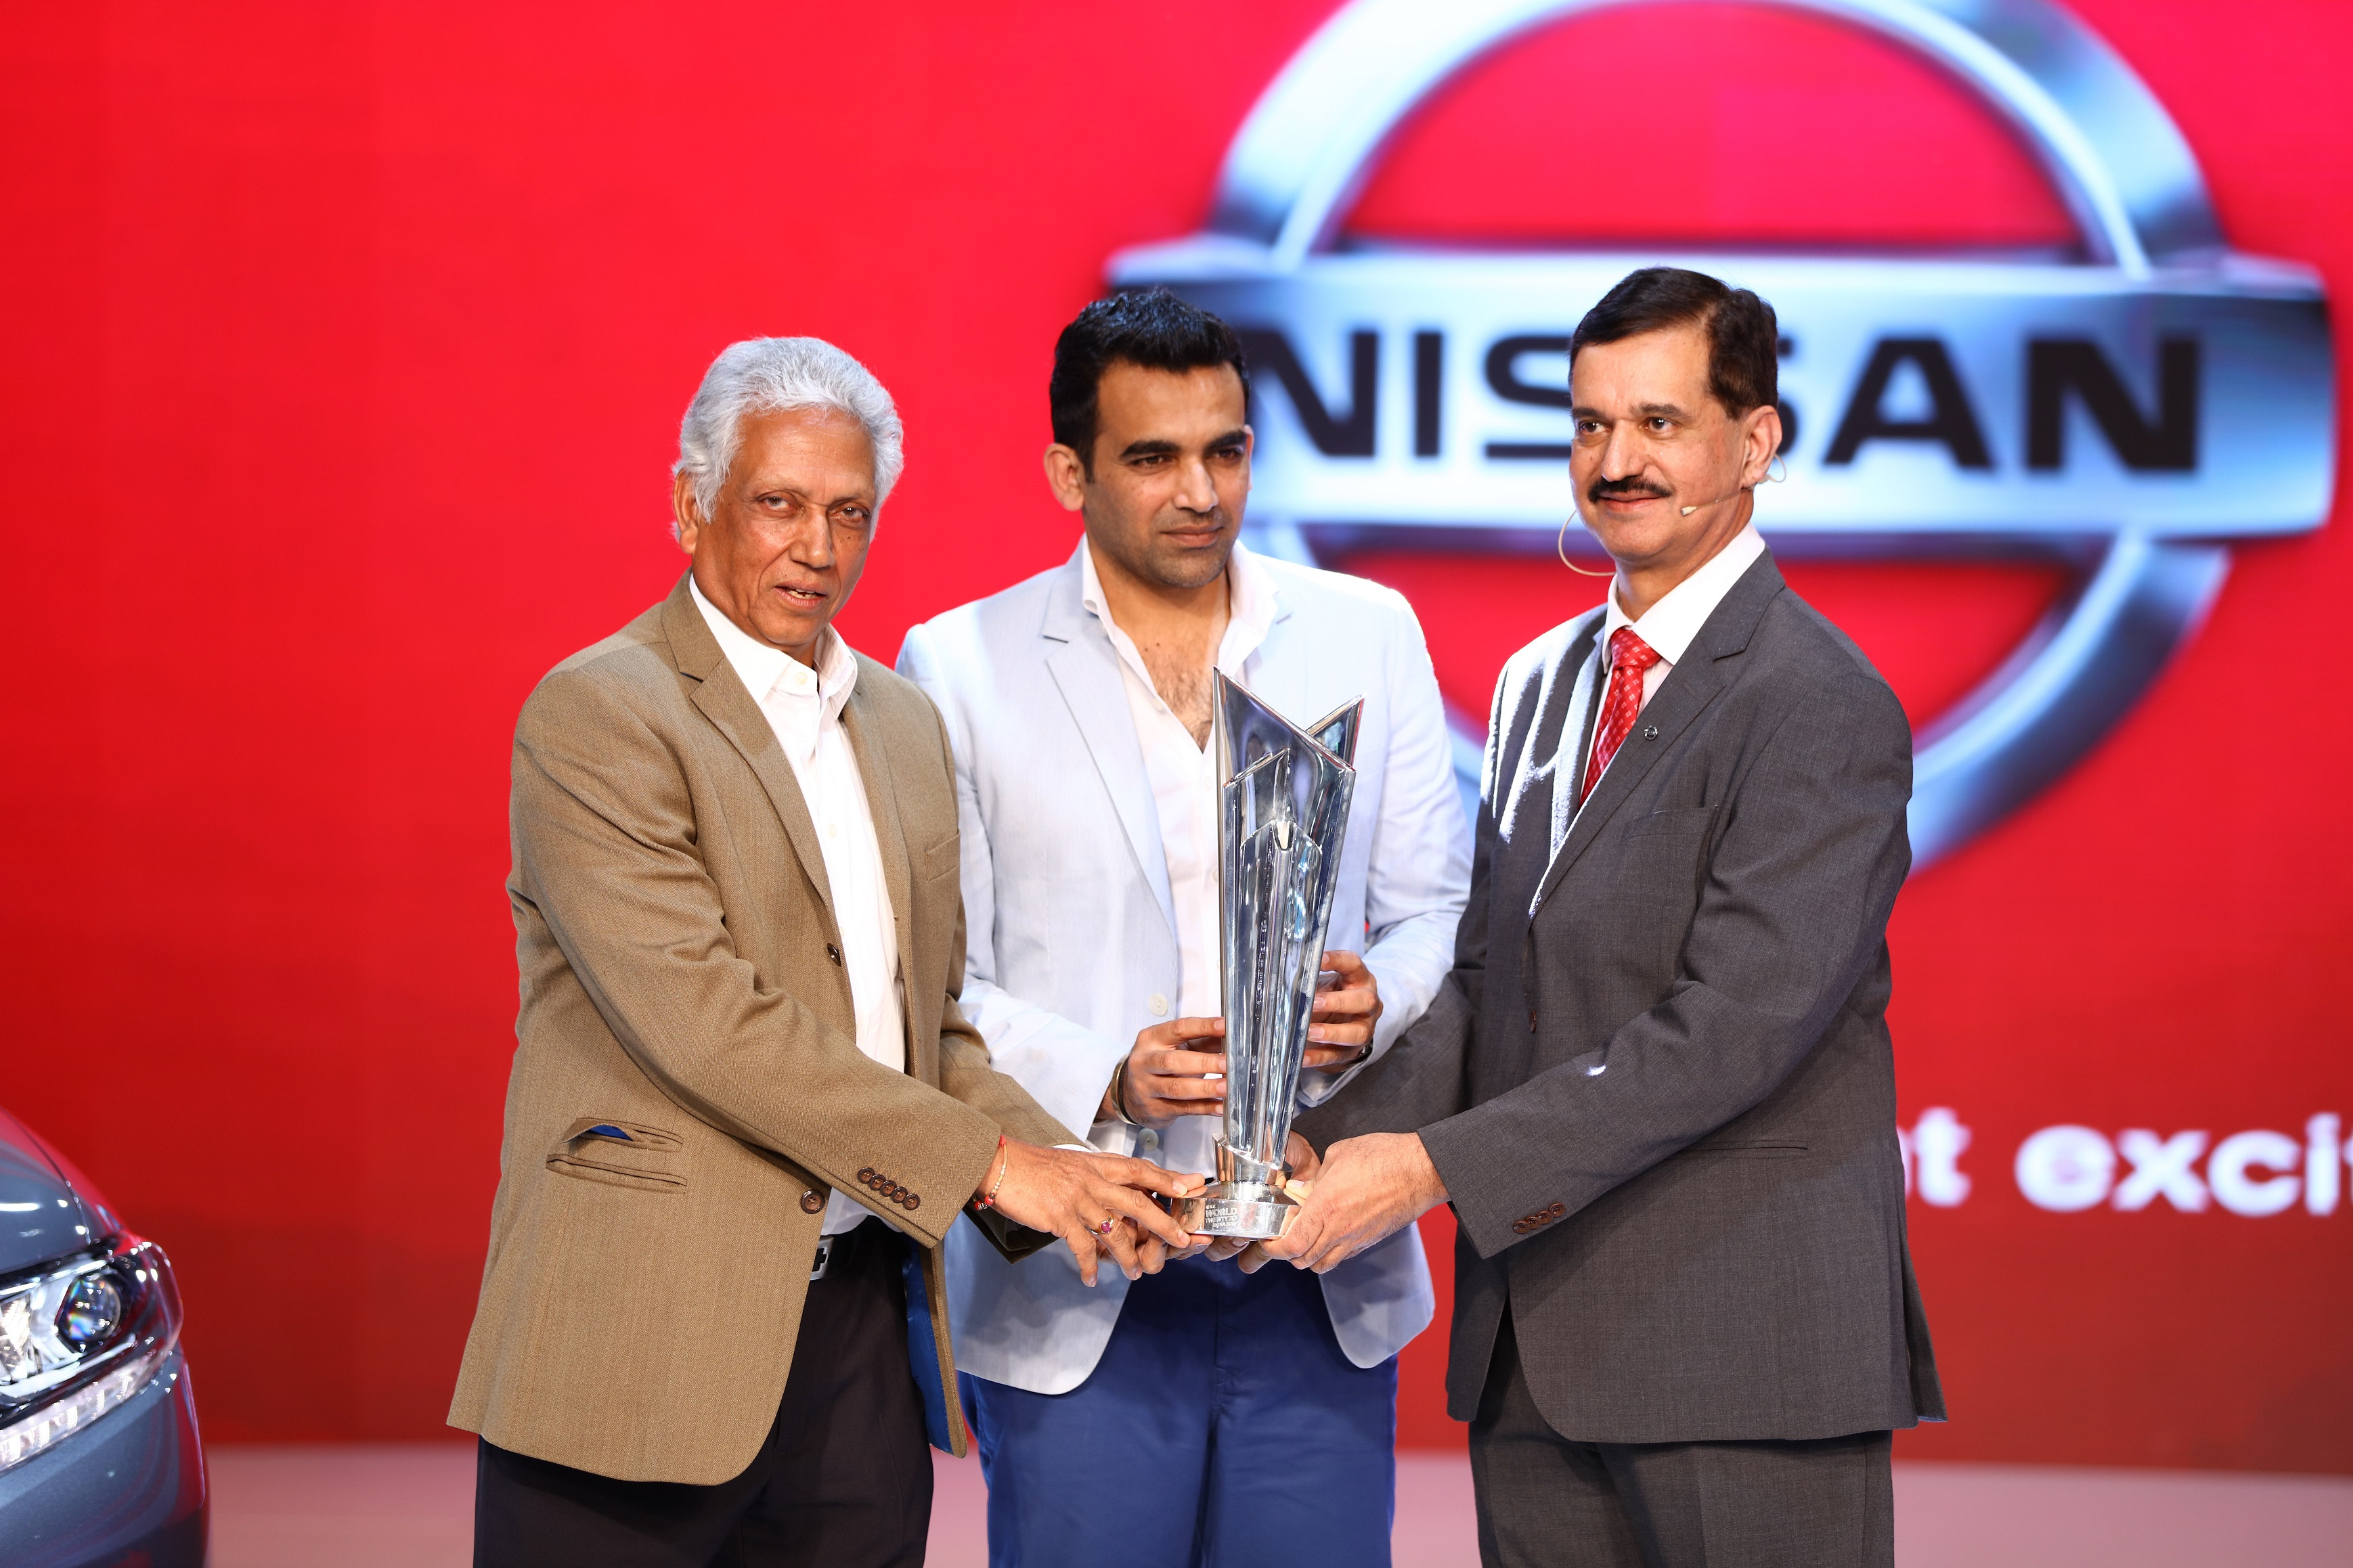 Picture 1 - 1983 WC hero Mohinder Amarnath, Former pace bowler Zaheer Khan and Arun Malhotra, Managing Director, Nissan Motor India PVT. Ltd.